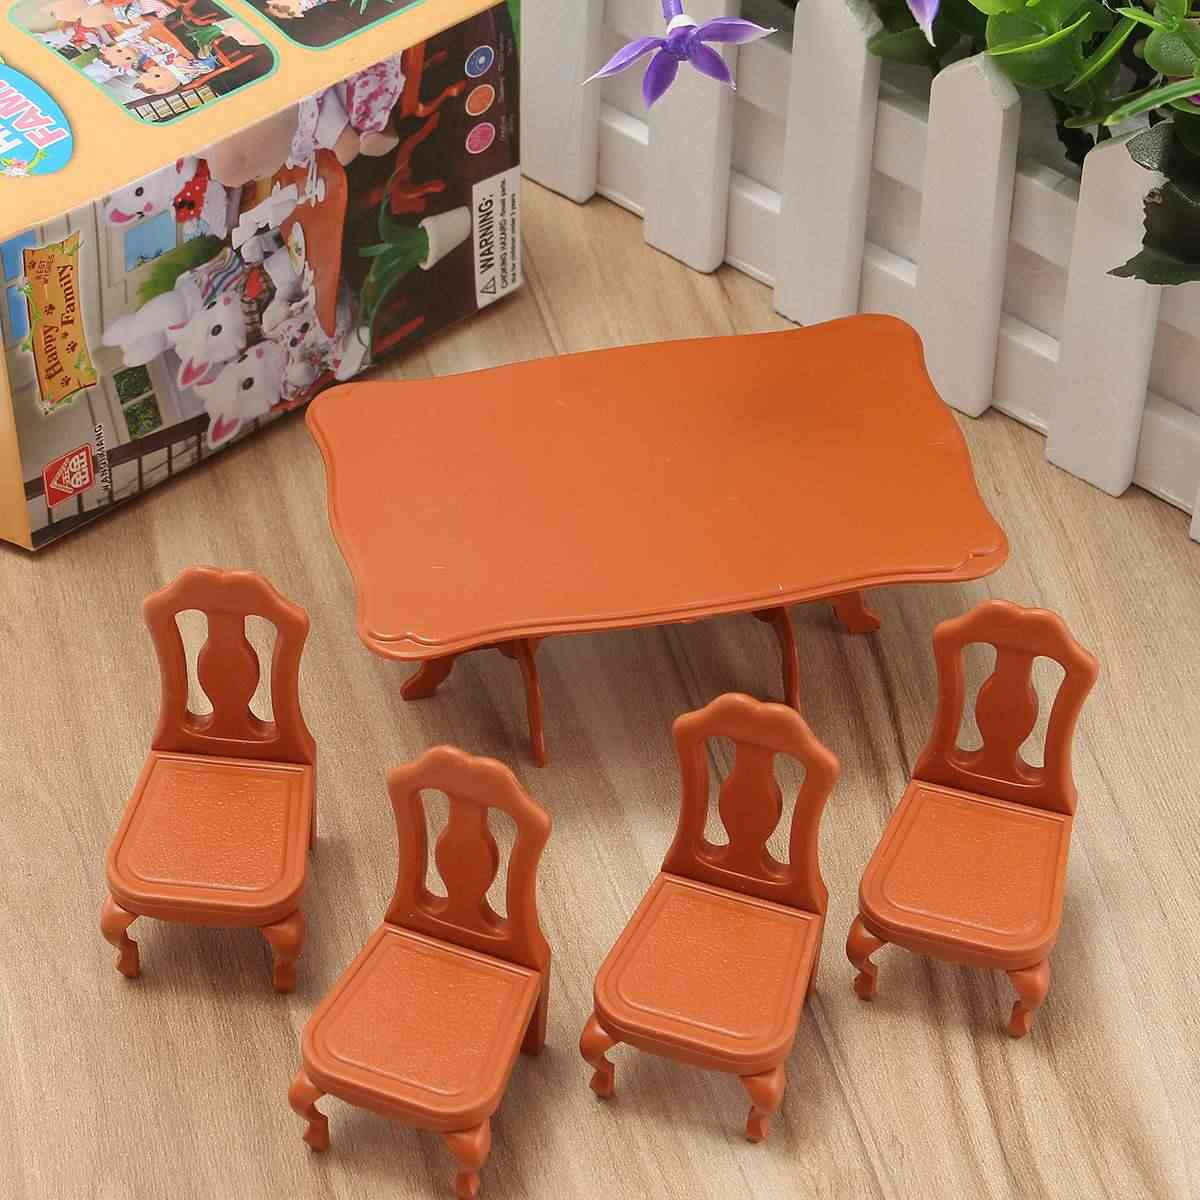 DIY Lovely Mini Furniture Dolls House Miniature Dining Table Chair Set Children Kids Gift Toys Dolls House Accessories Kits